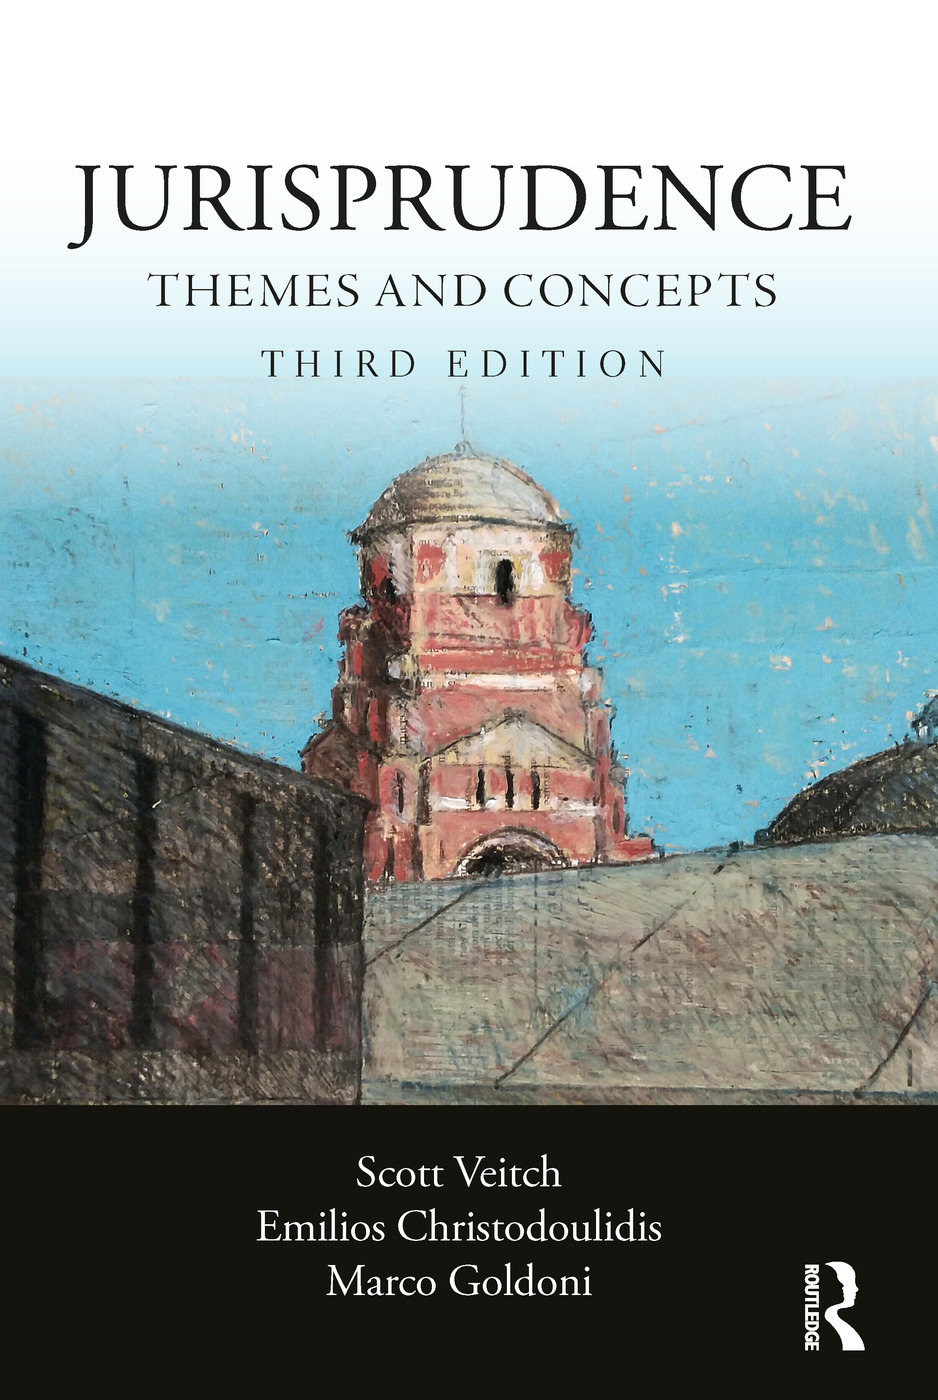 Jurisprudence: Themes and Concepts book cover